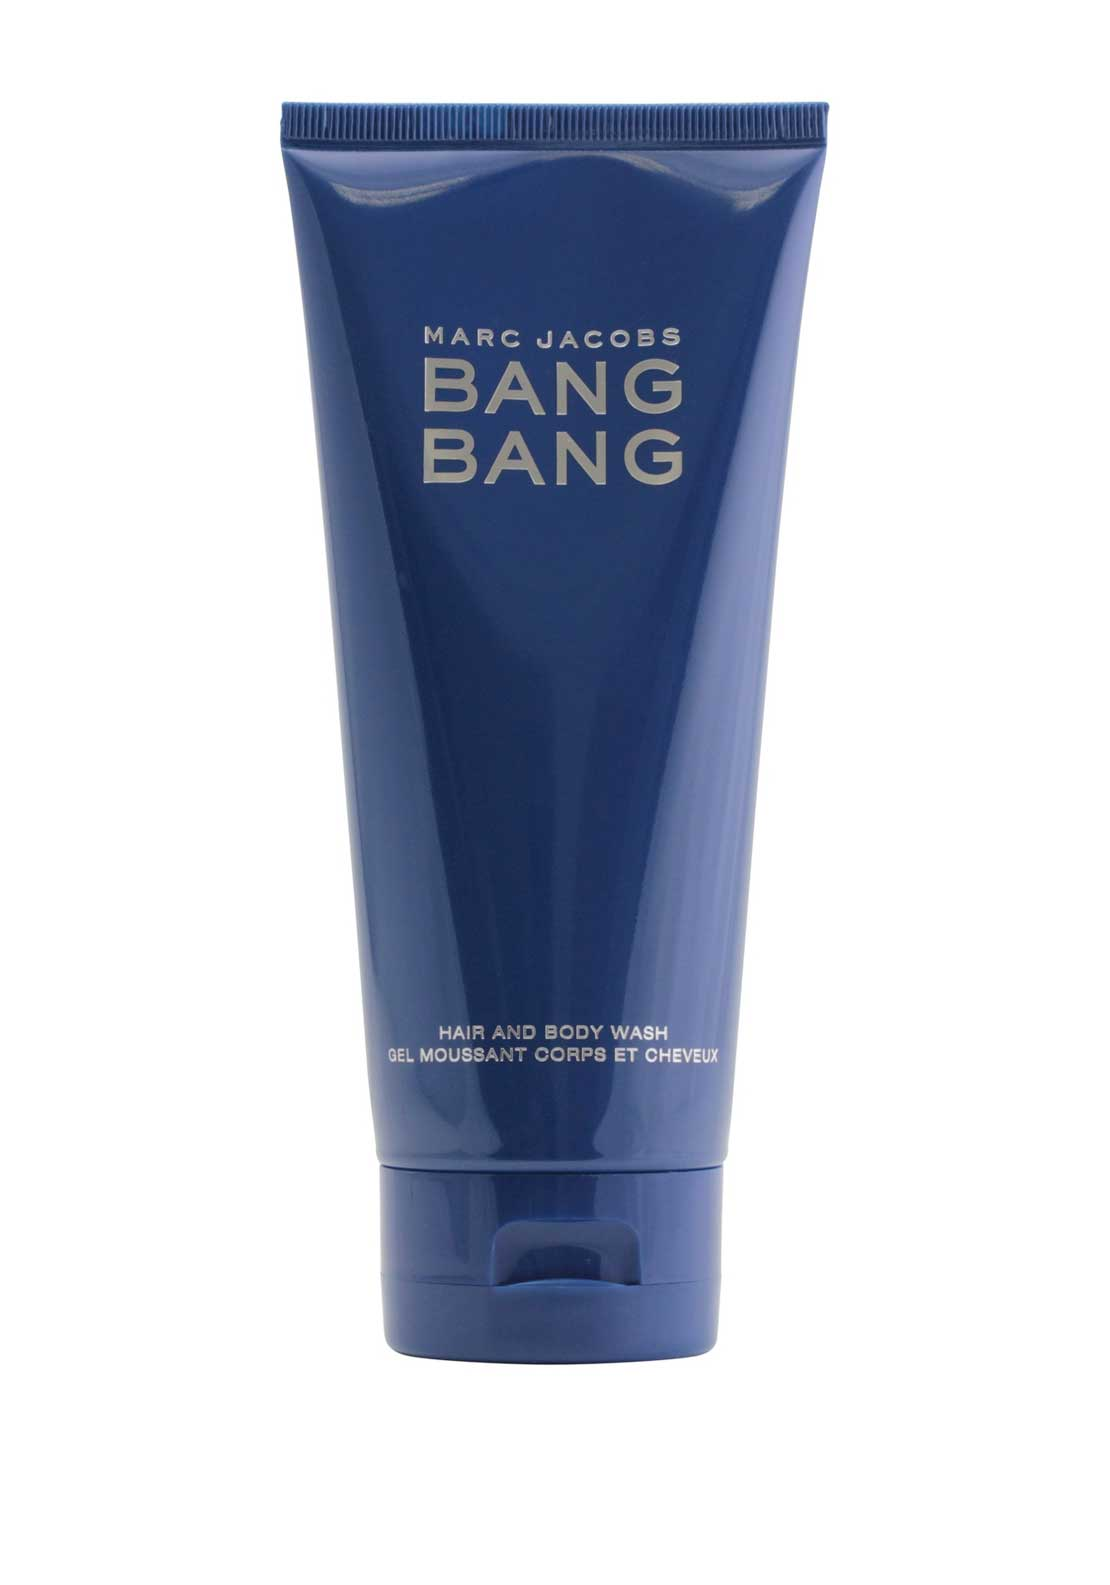 Marc Jacobs Bang Bang Hair & Body Wash, 200ml